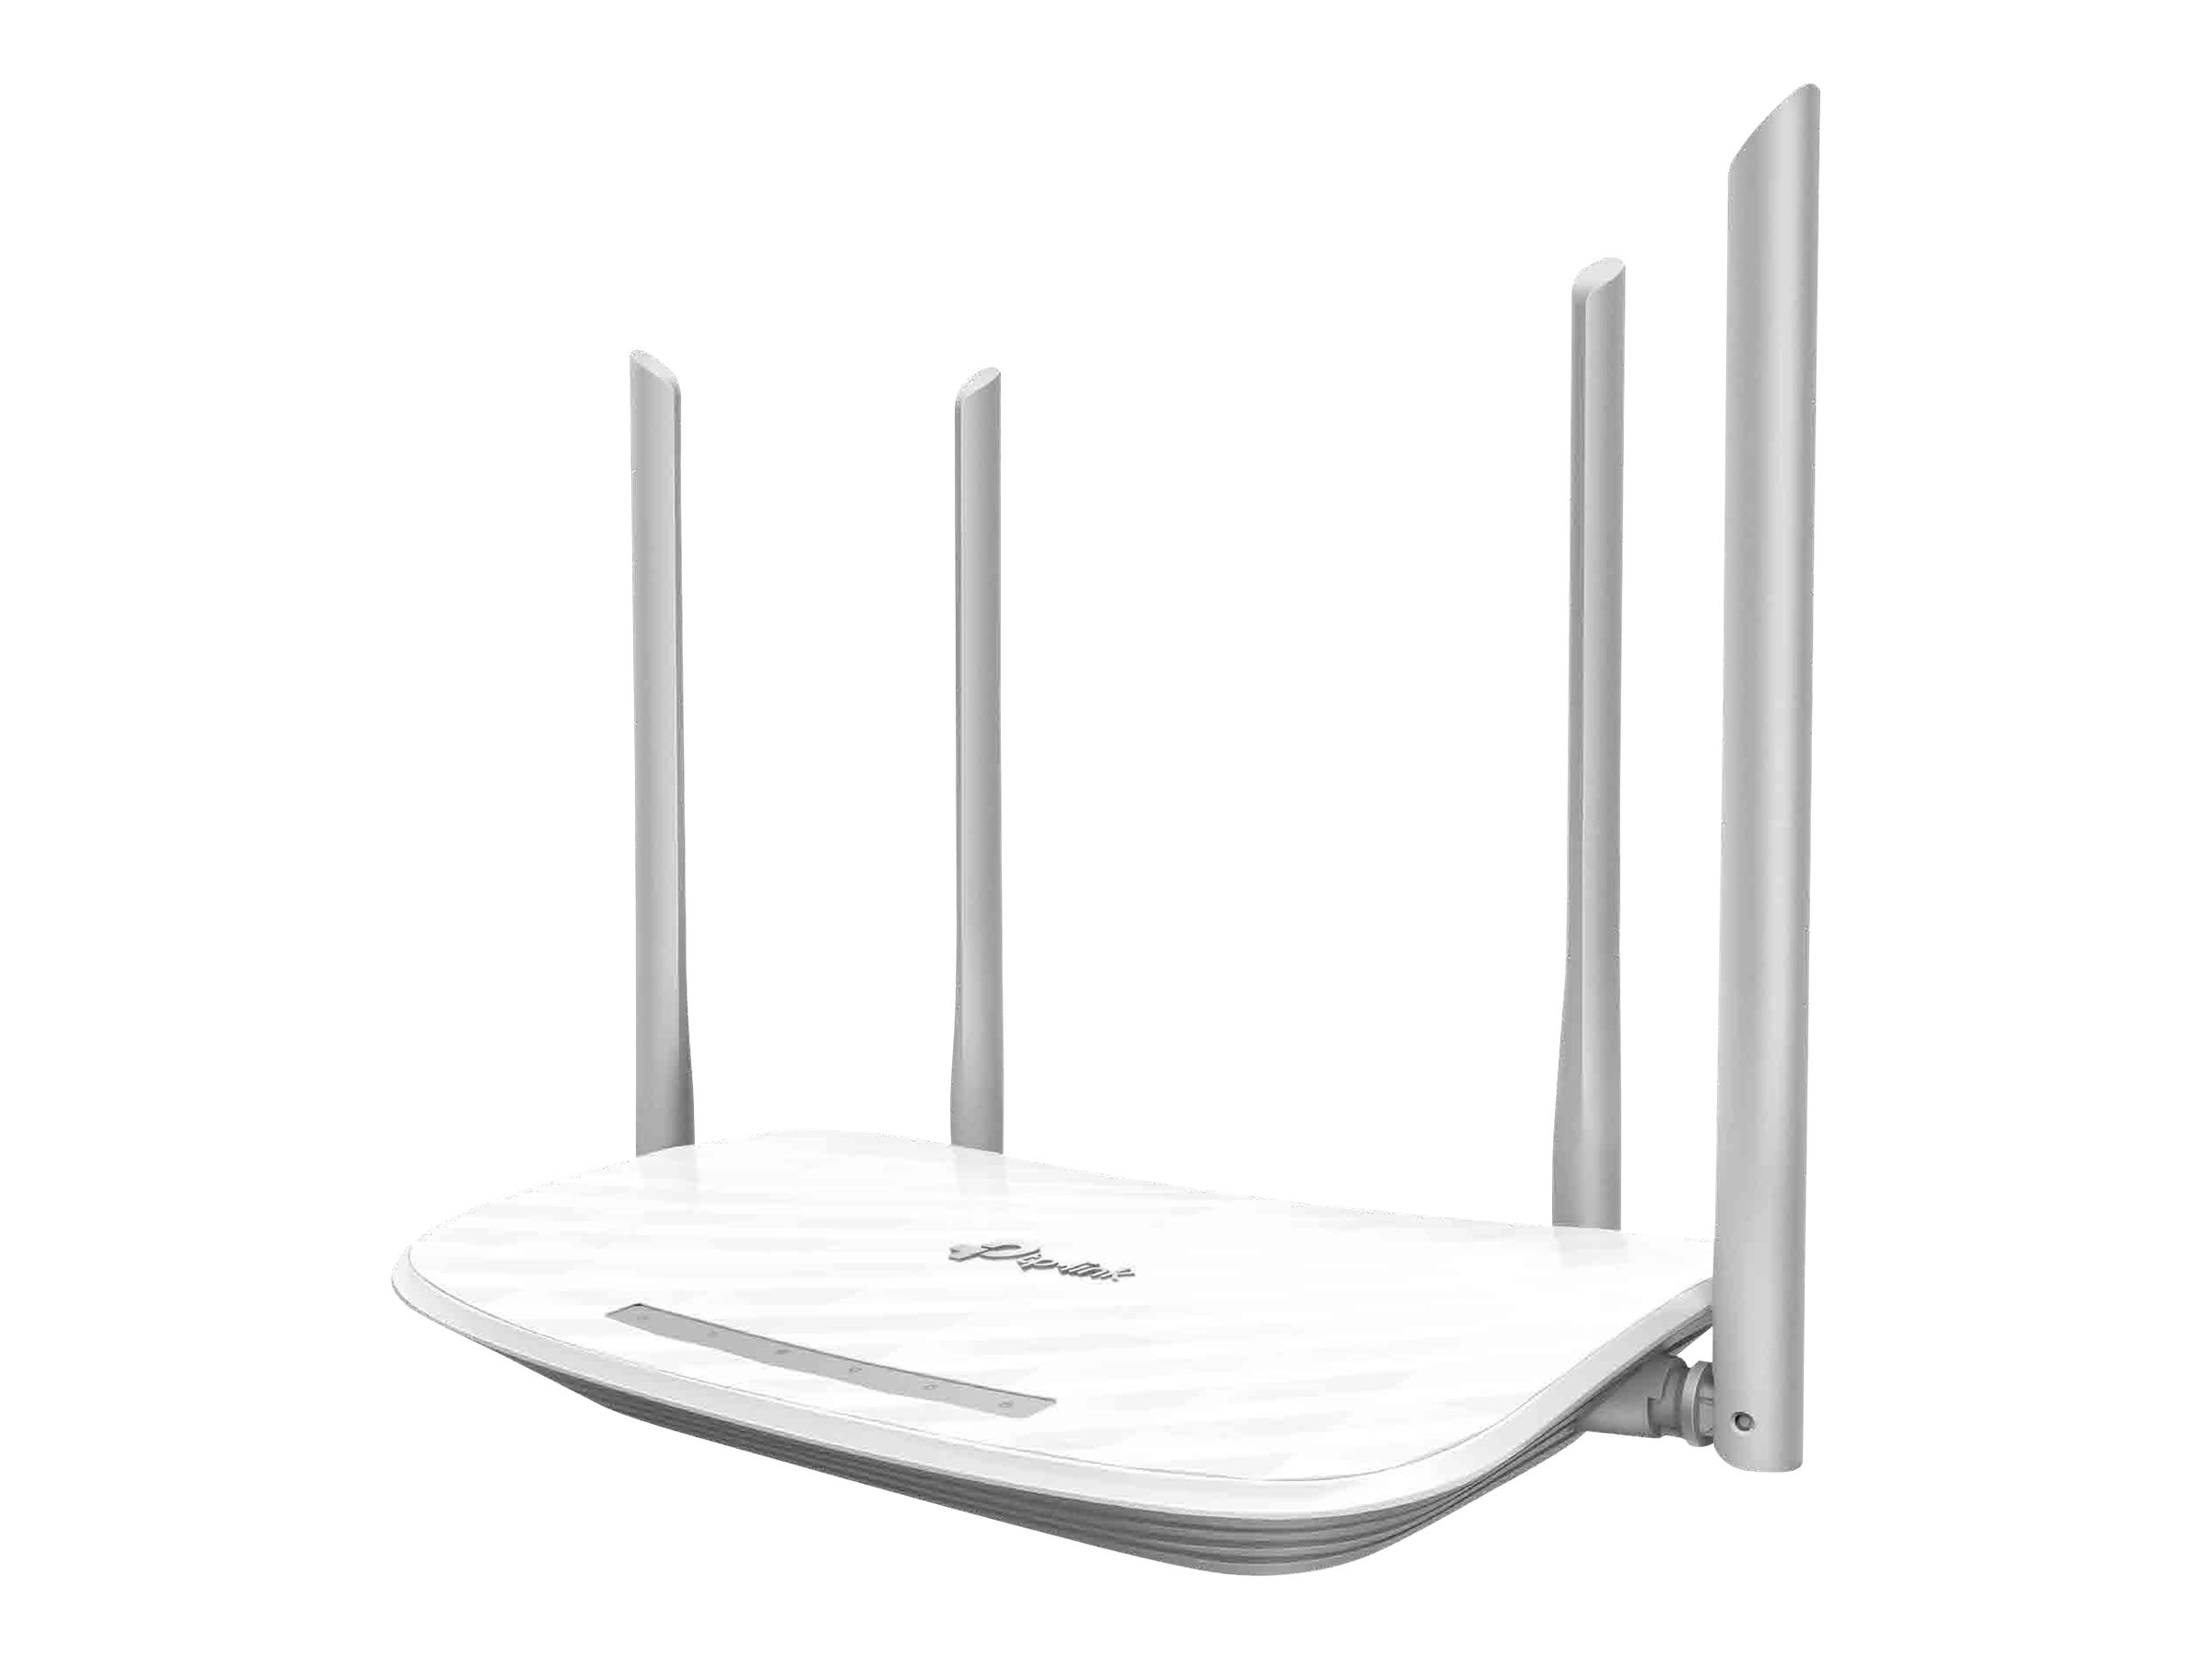 TP-Link Archer C50 - V3.0 - Wireless Router - 4-Port-Switch - 802.11a/b/g/n/ac - Dual-Band